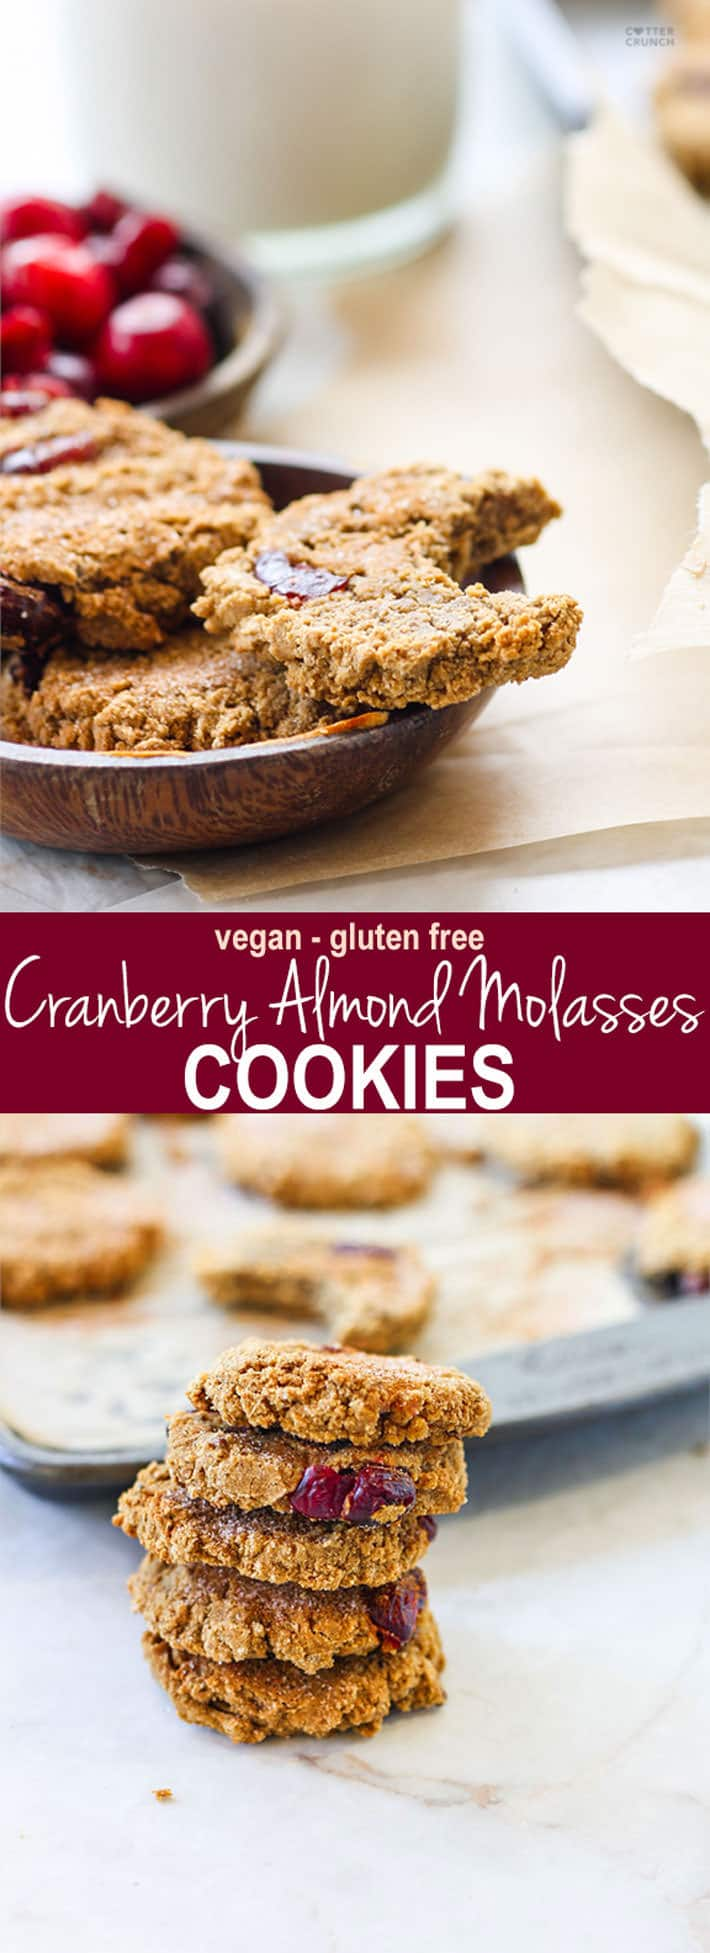 Vegan Cranberry Almond Molasses Cookies – And Why Molasses is the New SUPERFOOD!